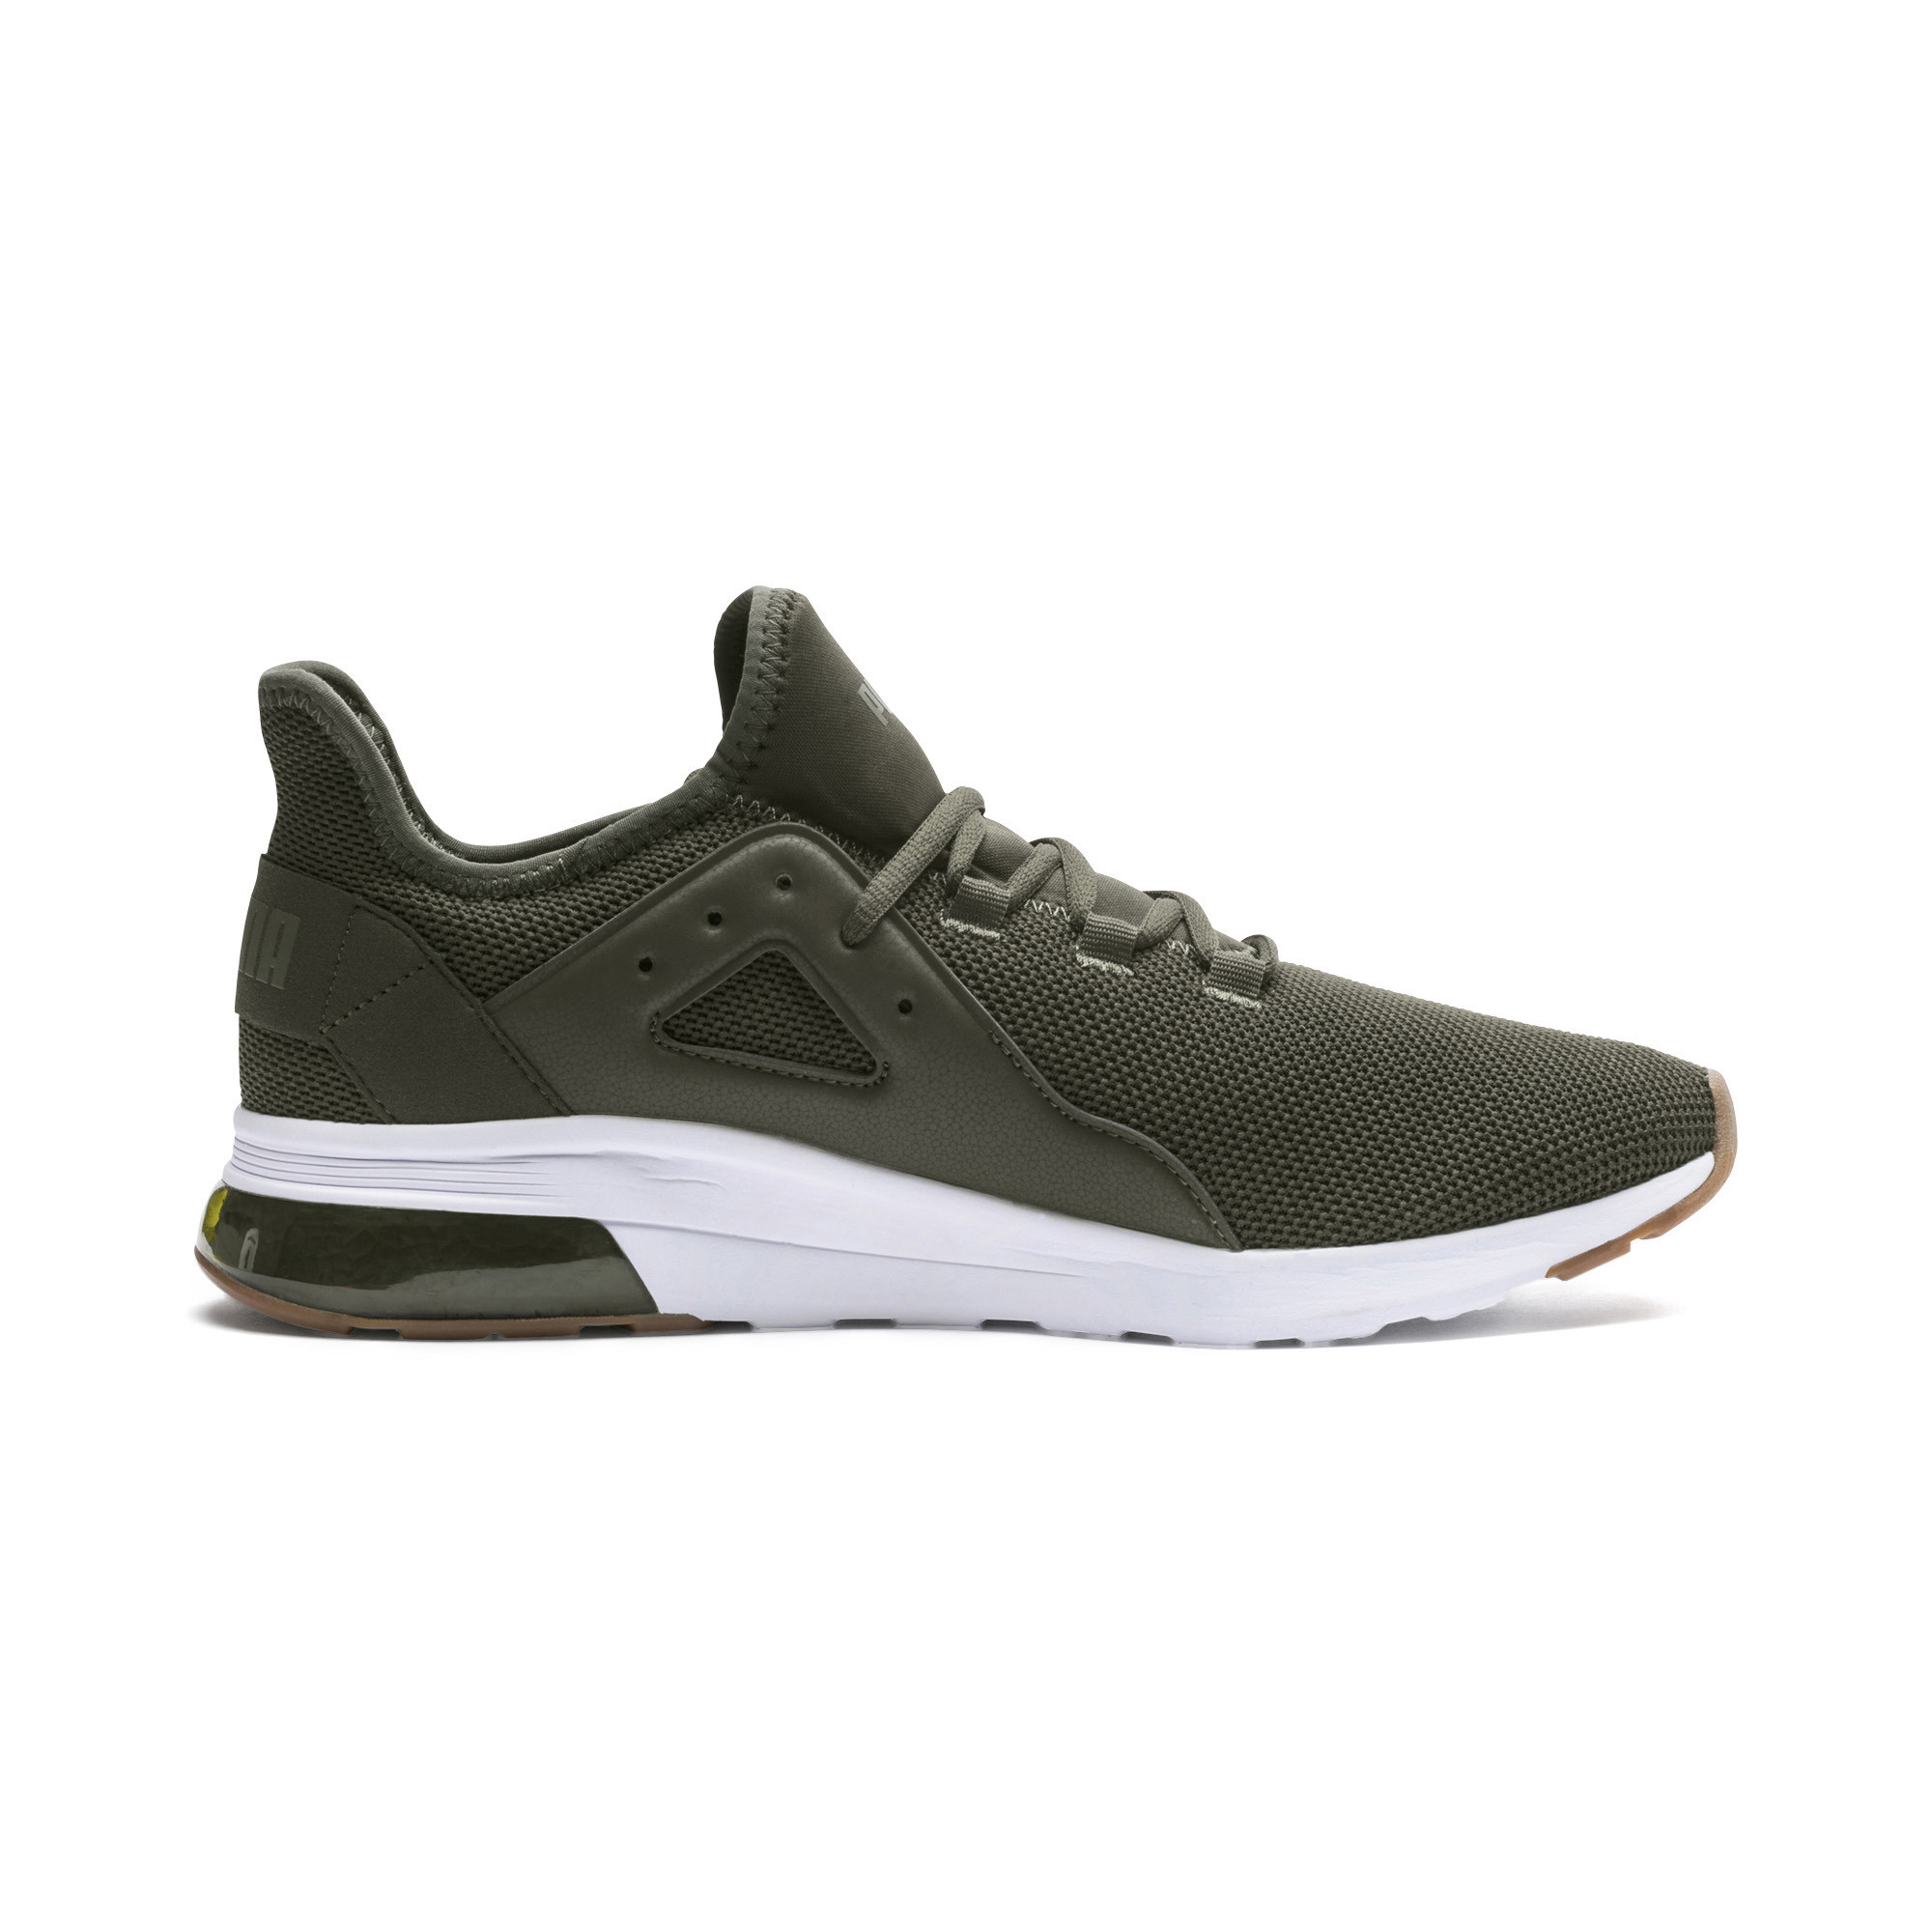 PUMA-Electron-Street-Sneakers-Men-Shoe-Basics thumbnail 6